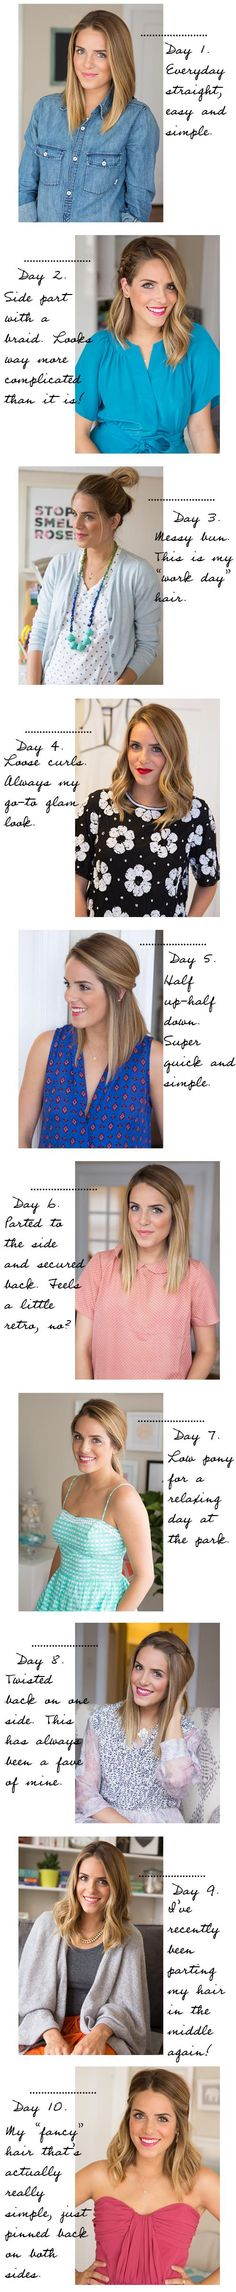 Try new hairstyles for summer! 10 super chic and pretty ways to wear your hair courtesy of @Julia Engel.